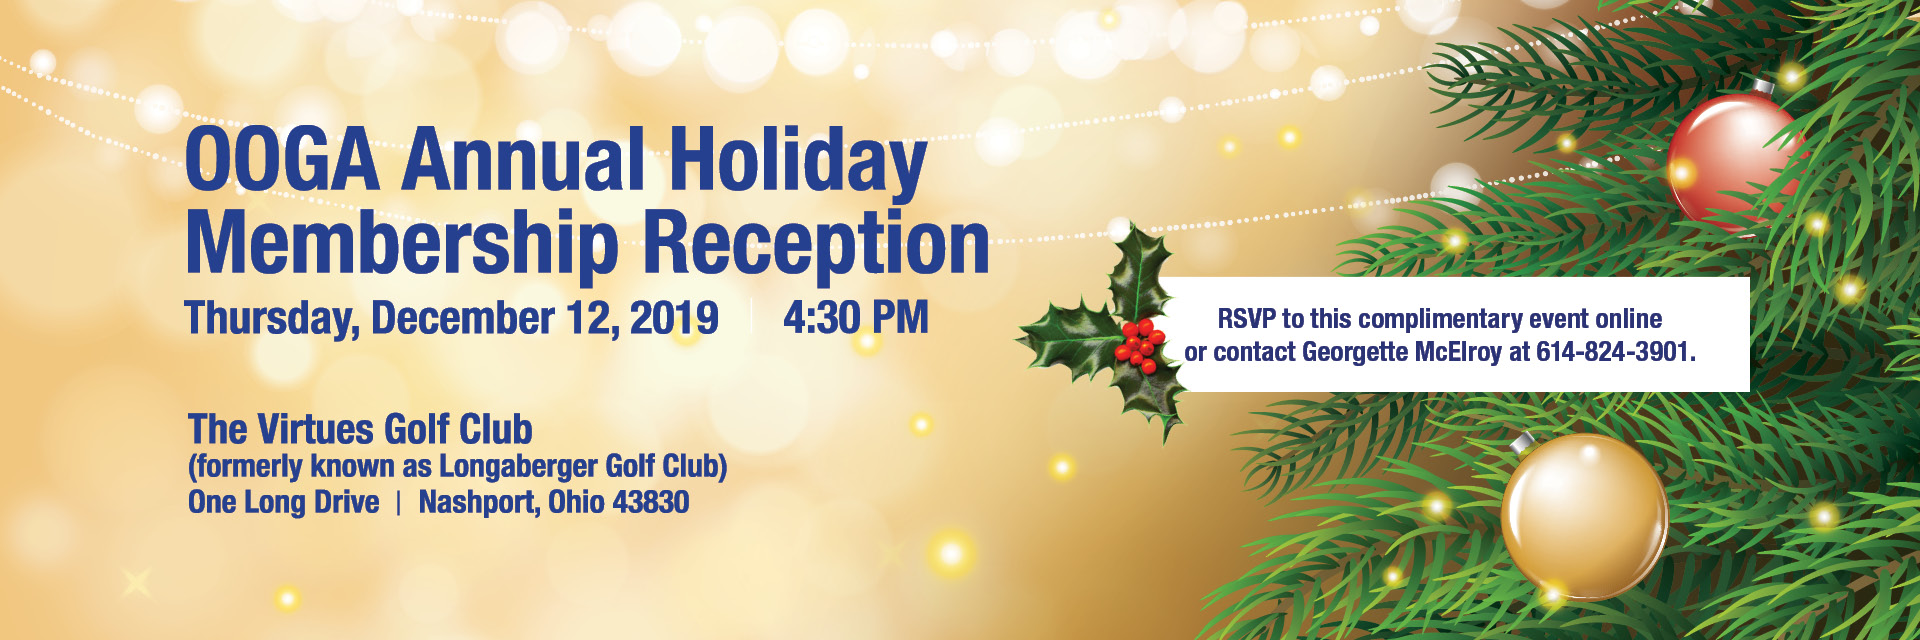 OOGA Annual Holiday Membership Reception